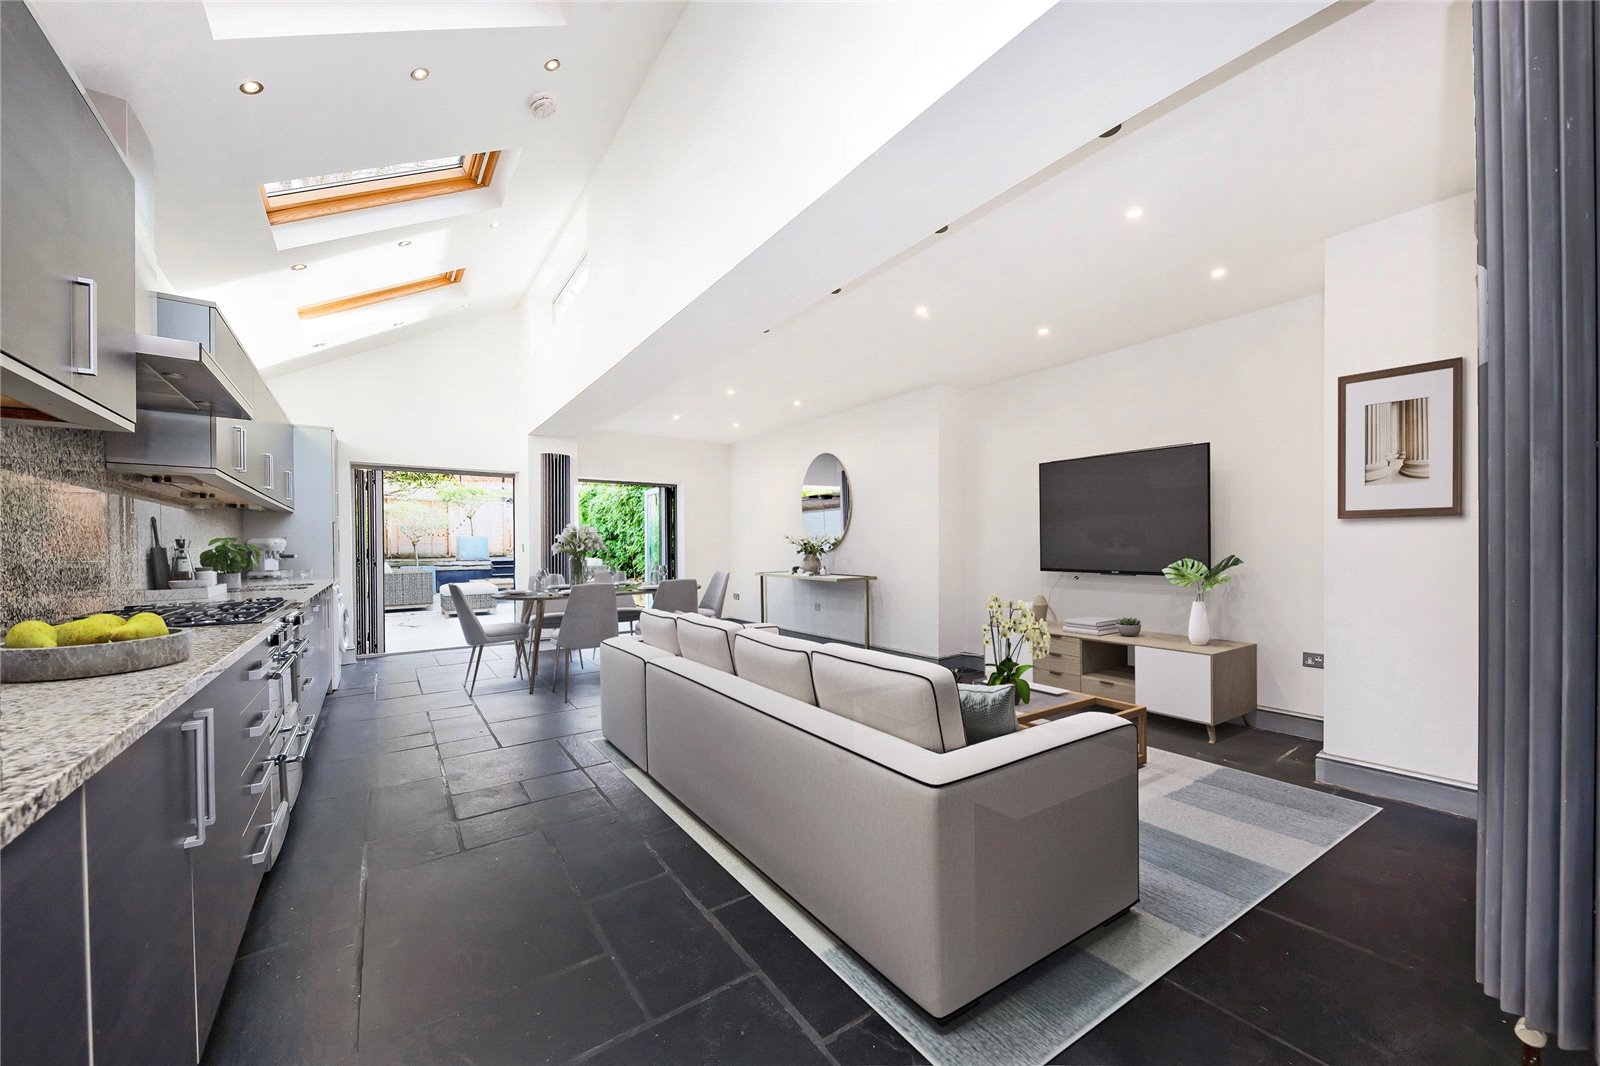 4 bed house for sale in Cricklewood, NW2 6QE  - Property Image 1